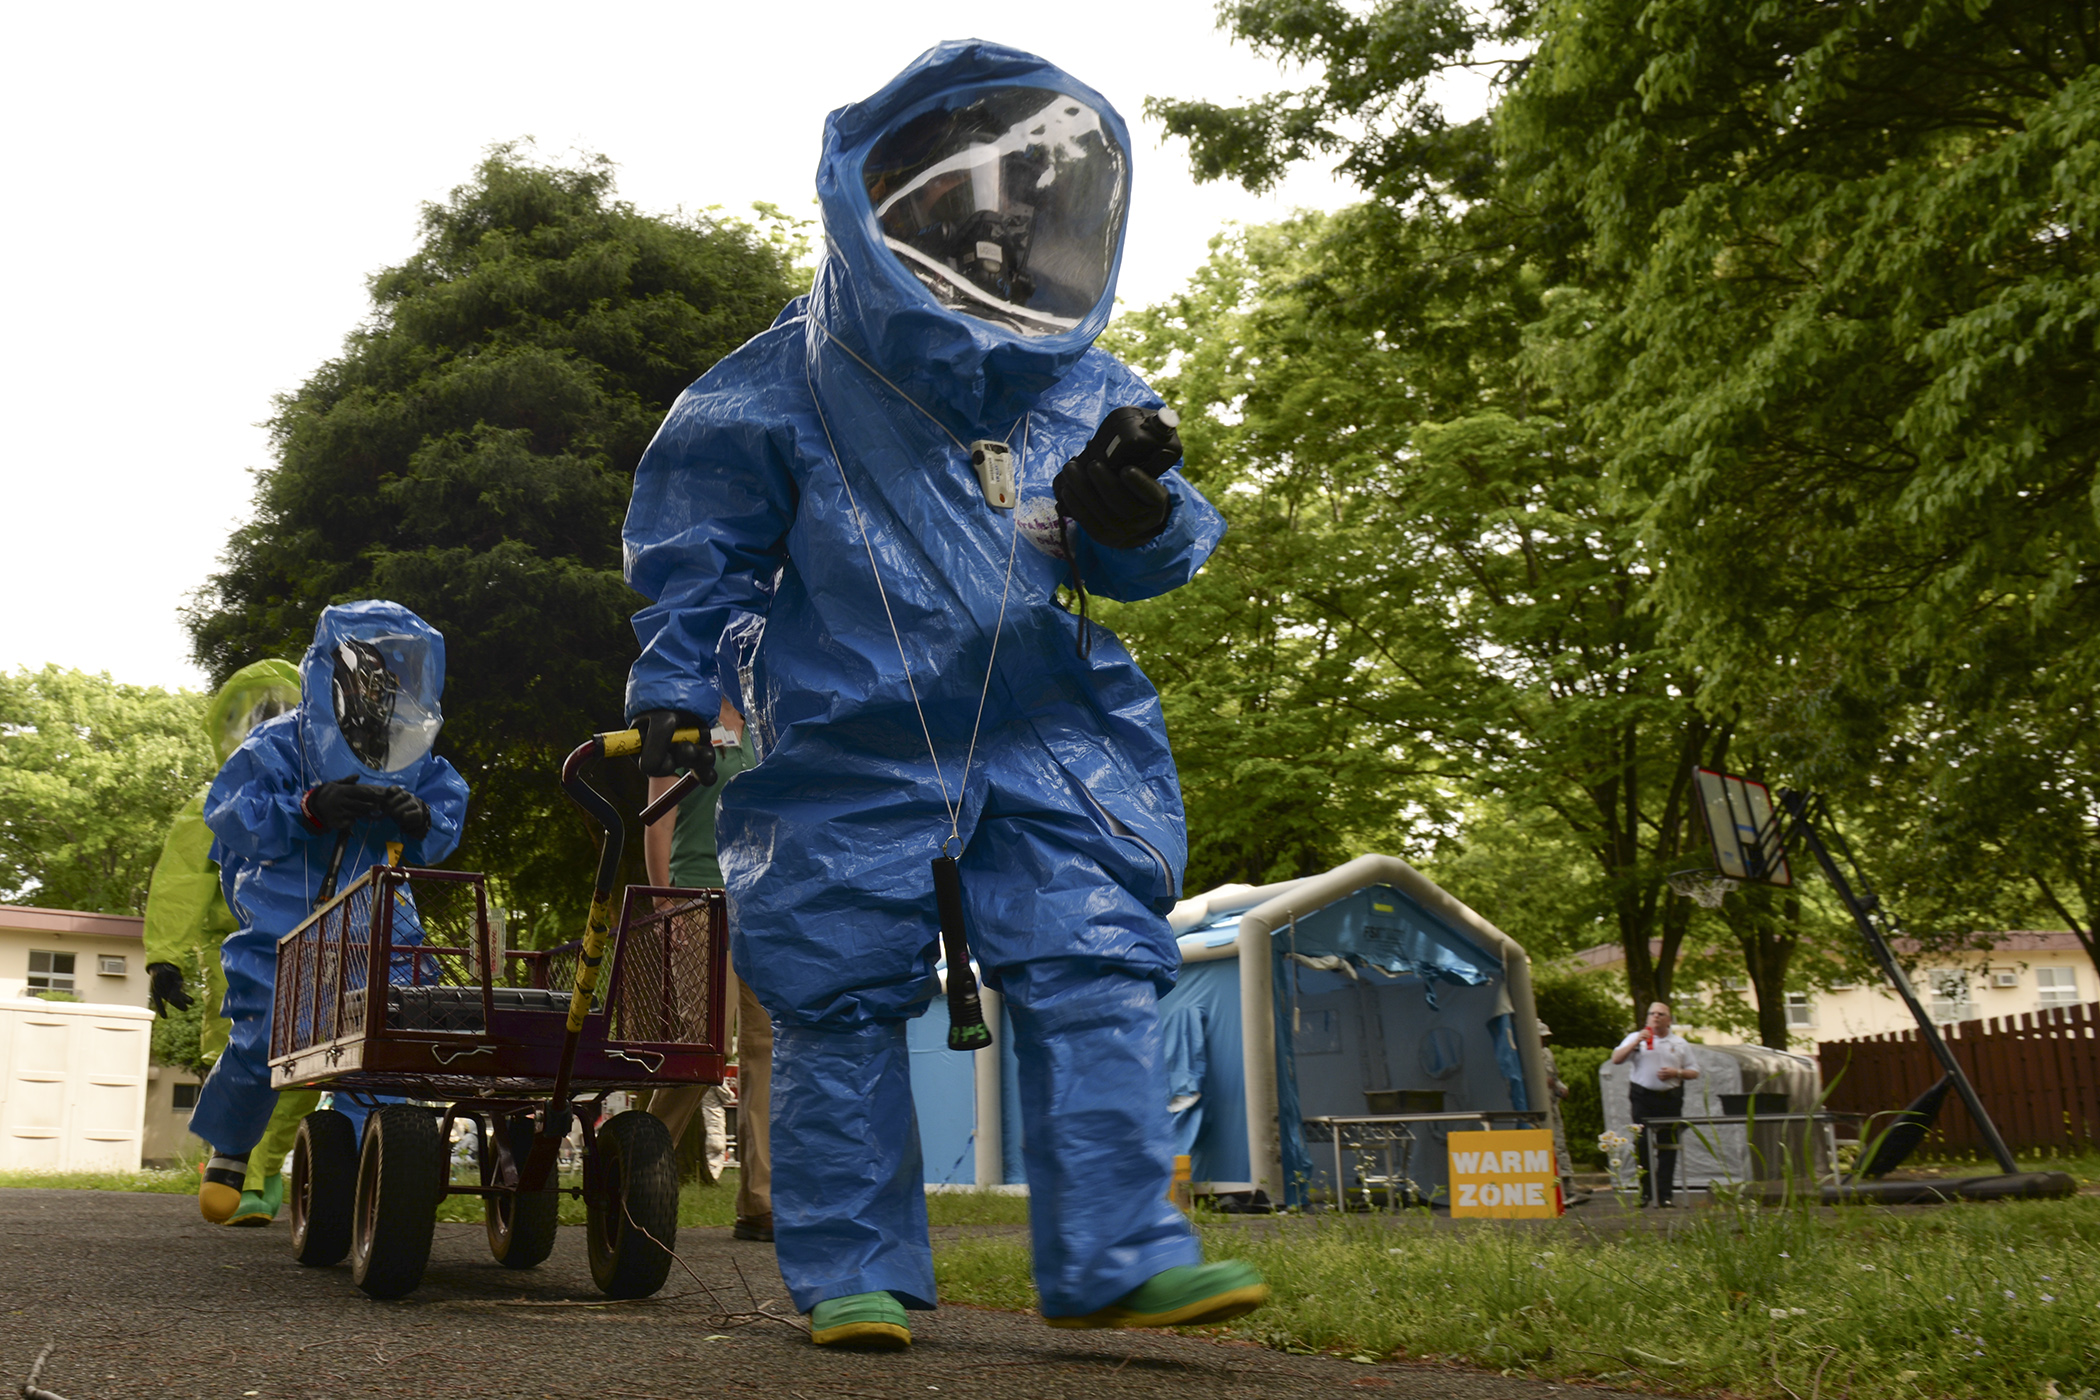 Airmen from the 374th Civil Engineer Squadron and the 374th Aerospace Medicine Squadron move toward to the scene of a mock chemical threat, May 6, 2015, at Yokota Air Base, Japan. According to the training scenario, responders were called to investigate after a simulated resident was discovered passed out in base housing. (U.S. Air Force photo by Airman 1st Class Elizabeth Baker/Released)